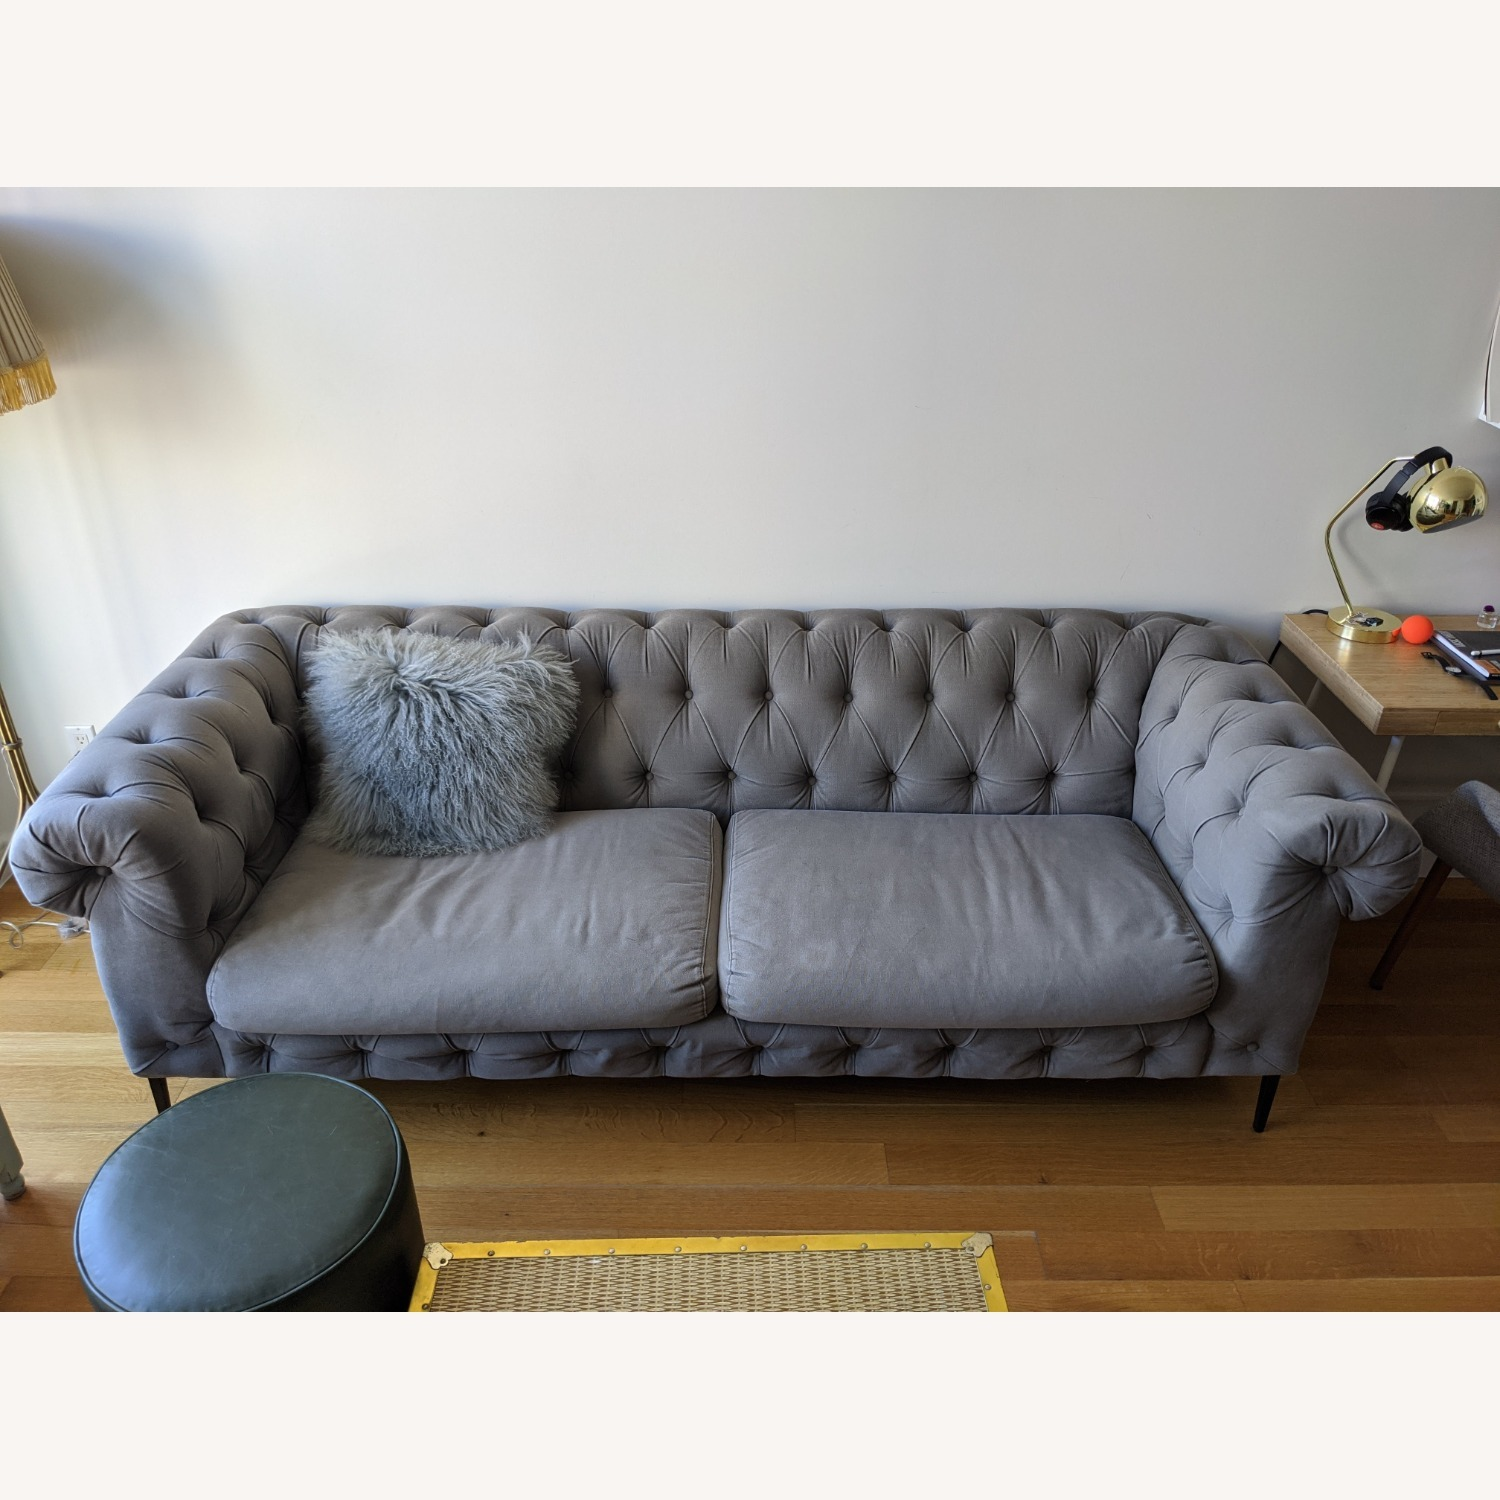 Anthropologie Canal Tufted Sofa - image-8